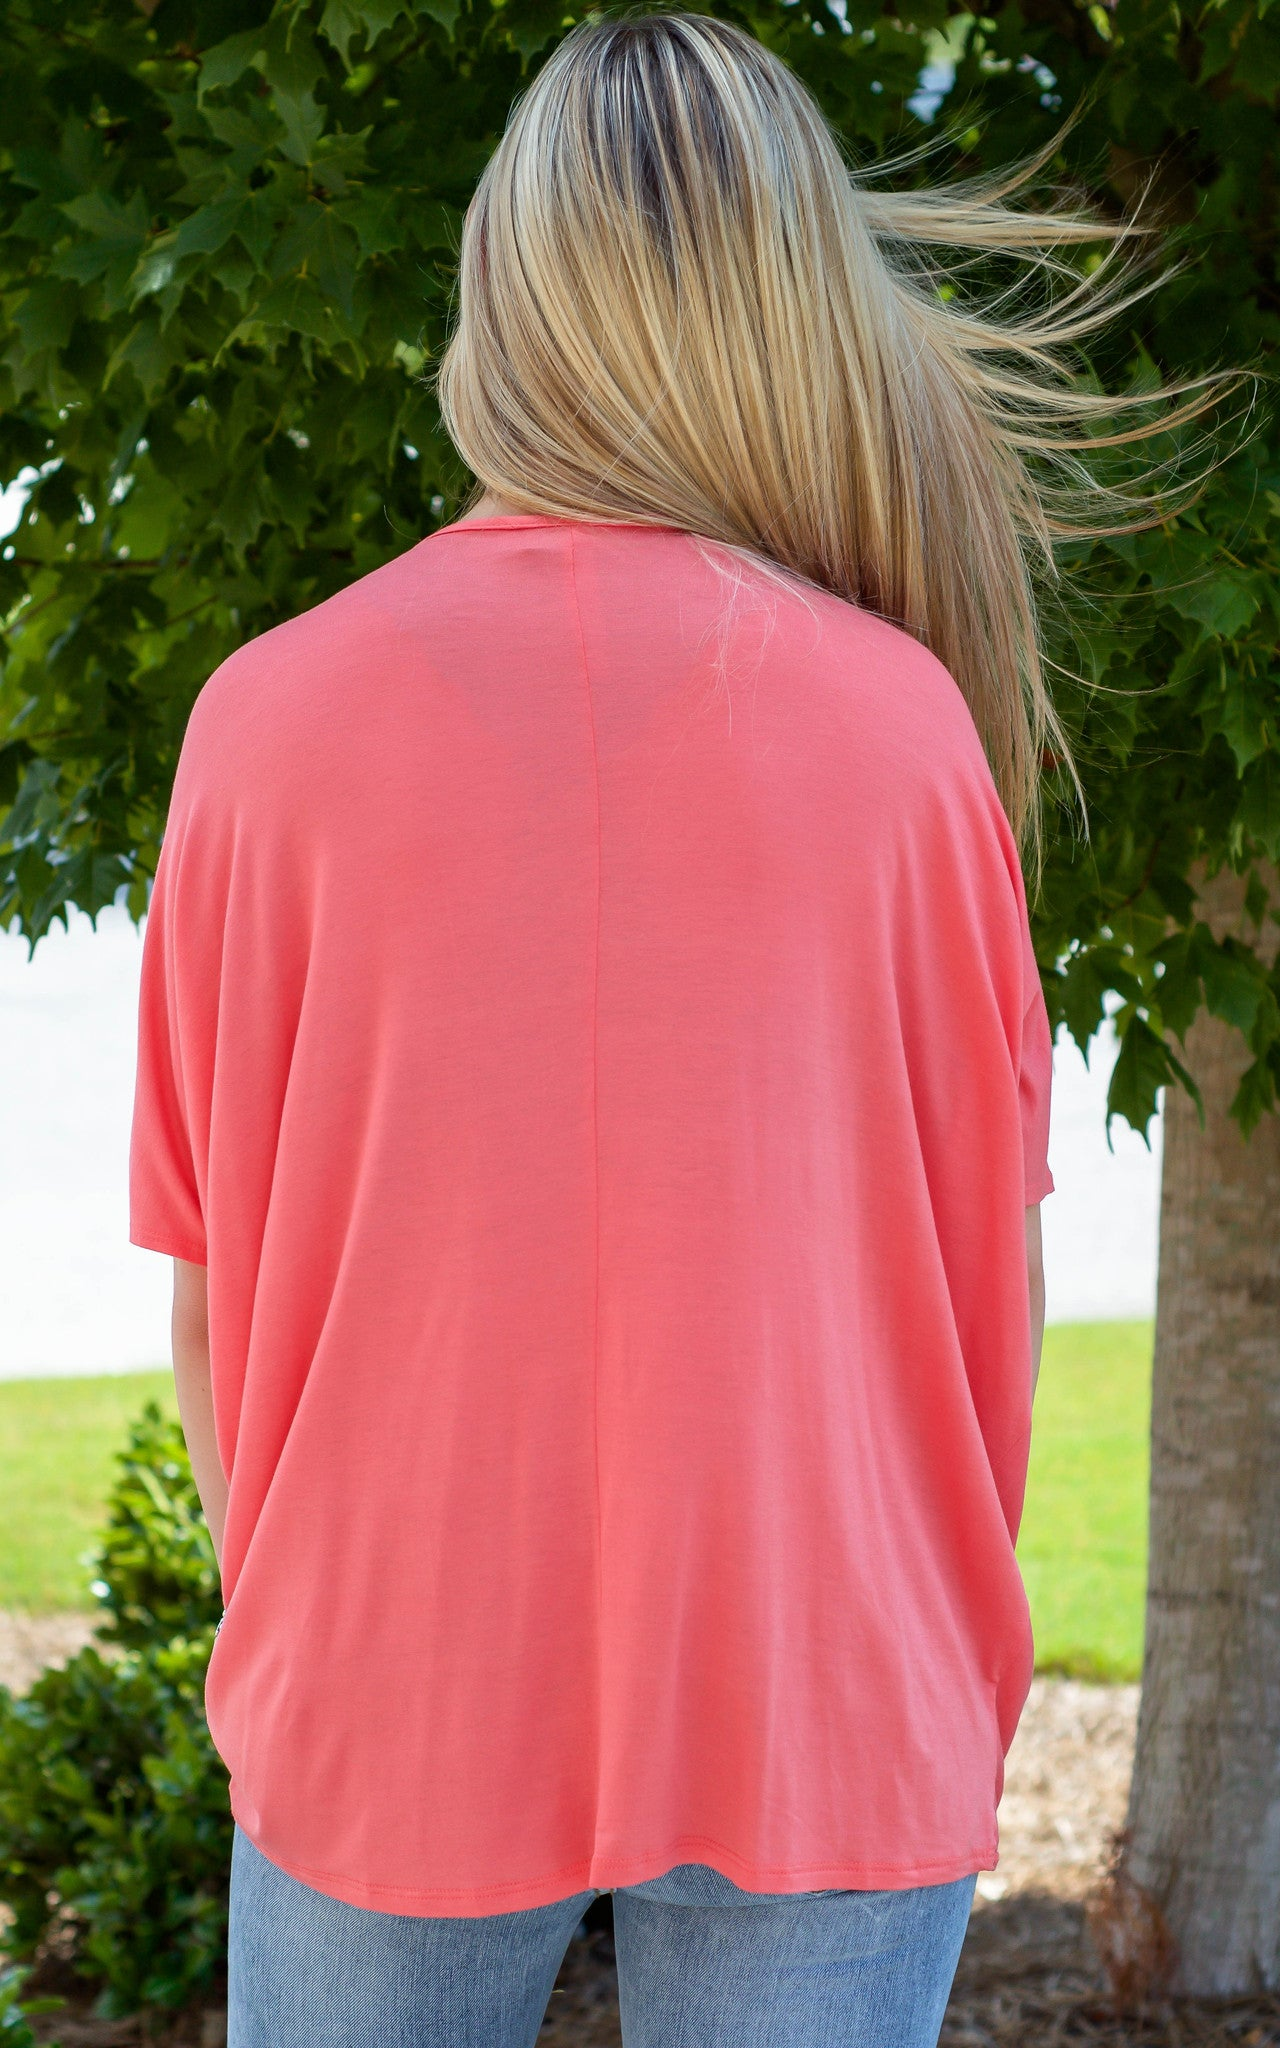 Swoop Coral Top - Dawn and Rae Boutique